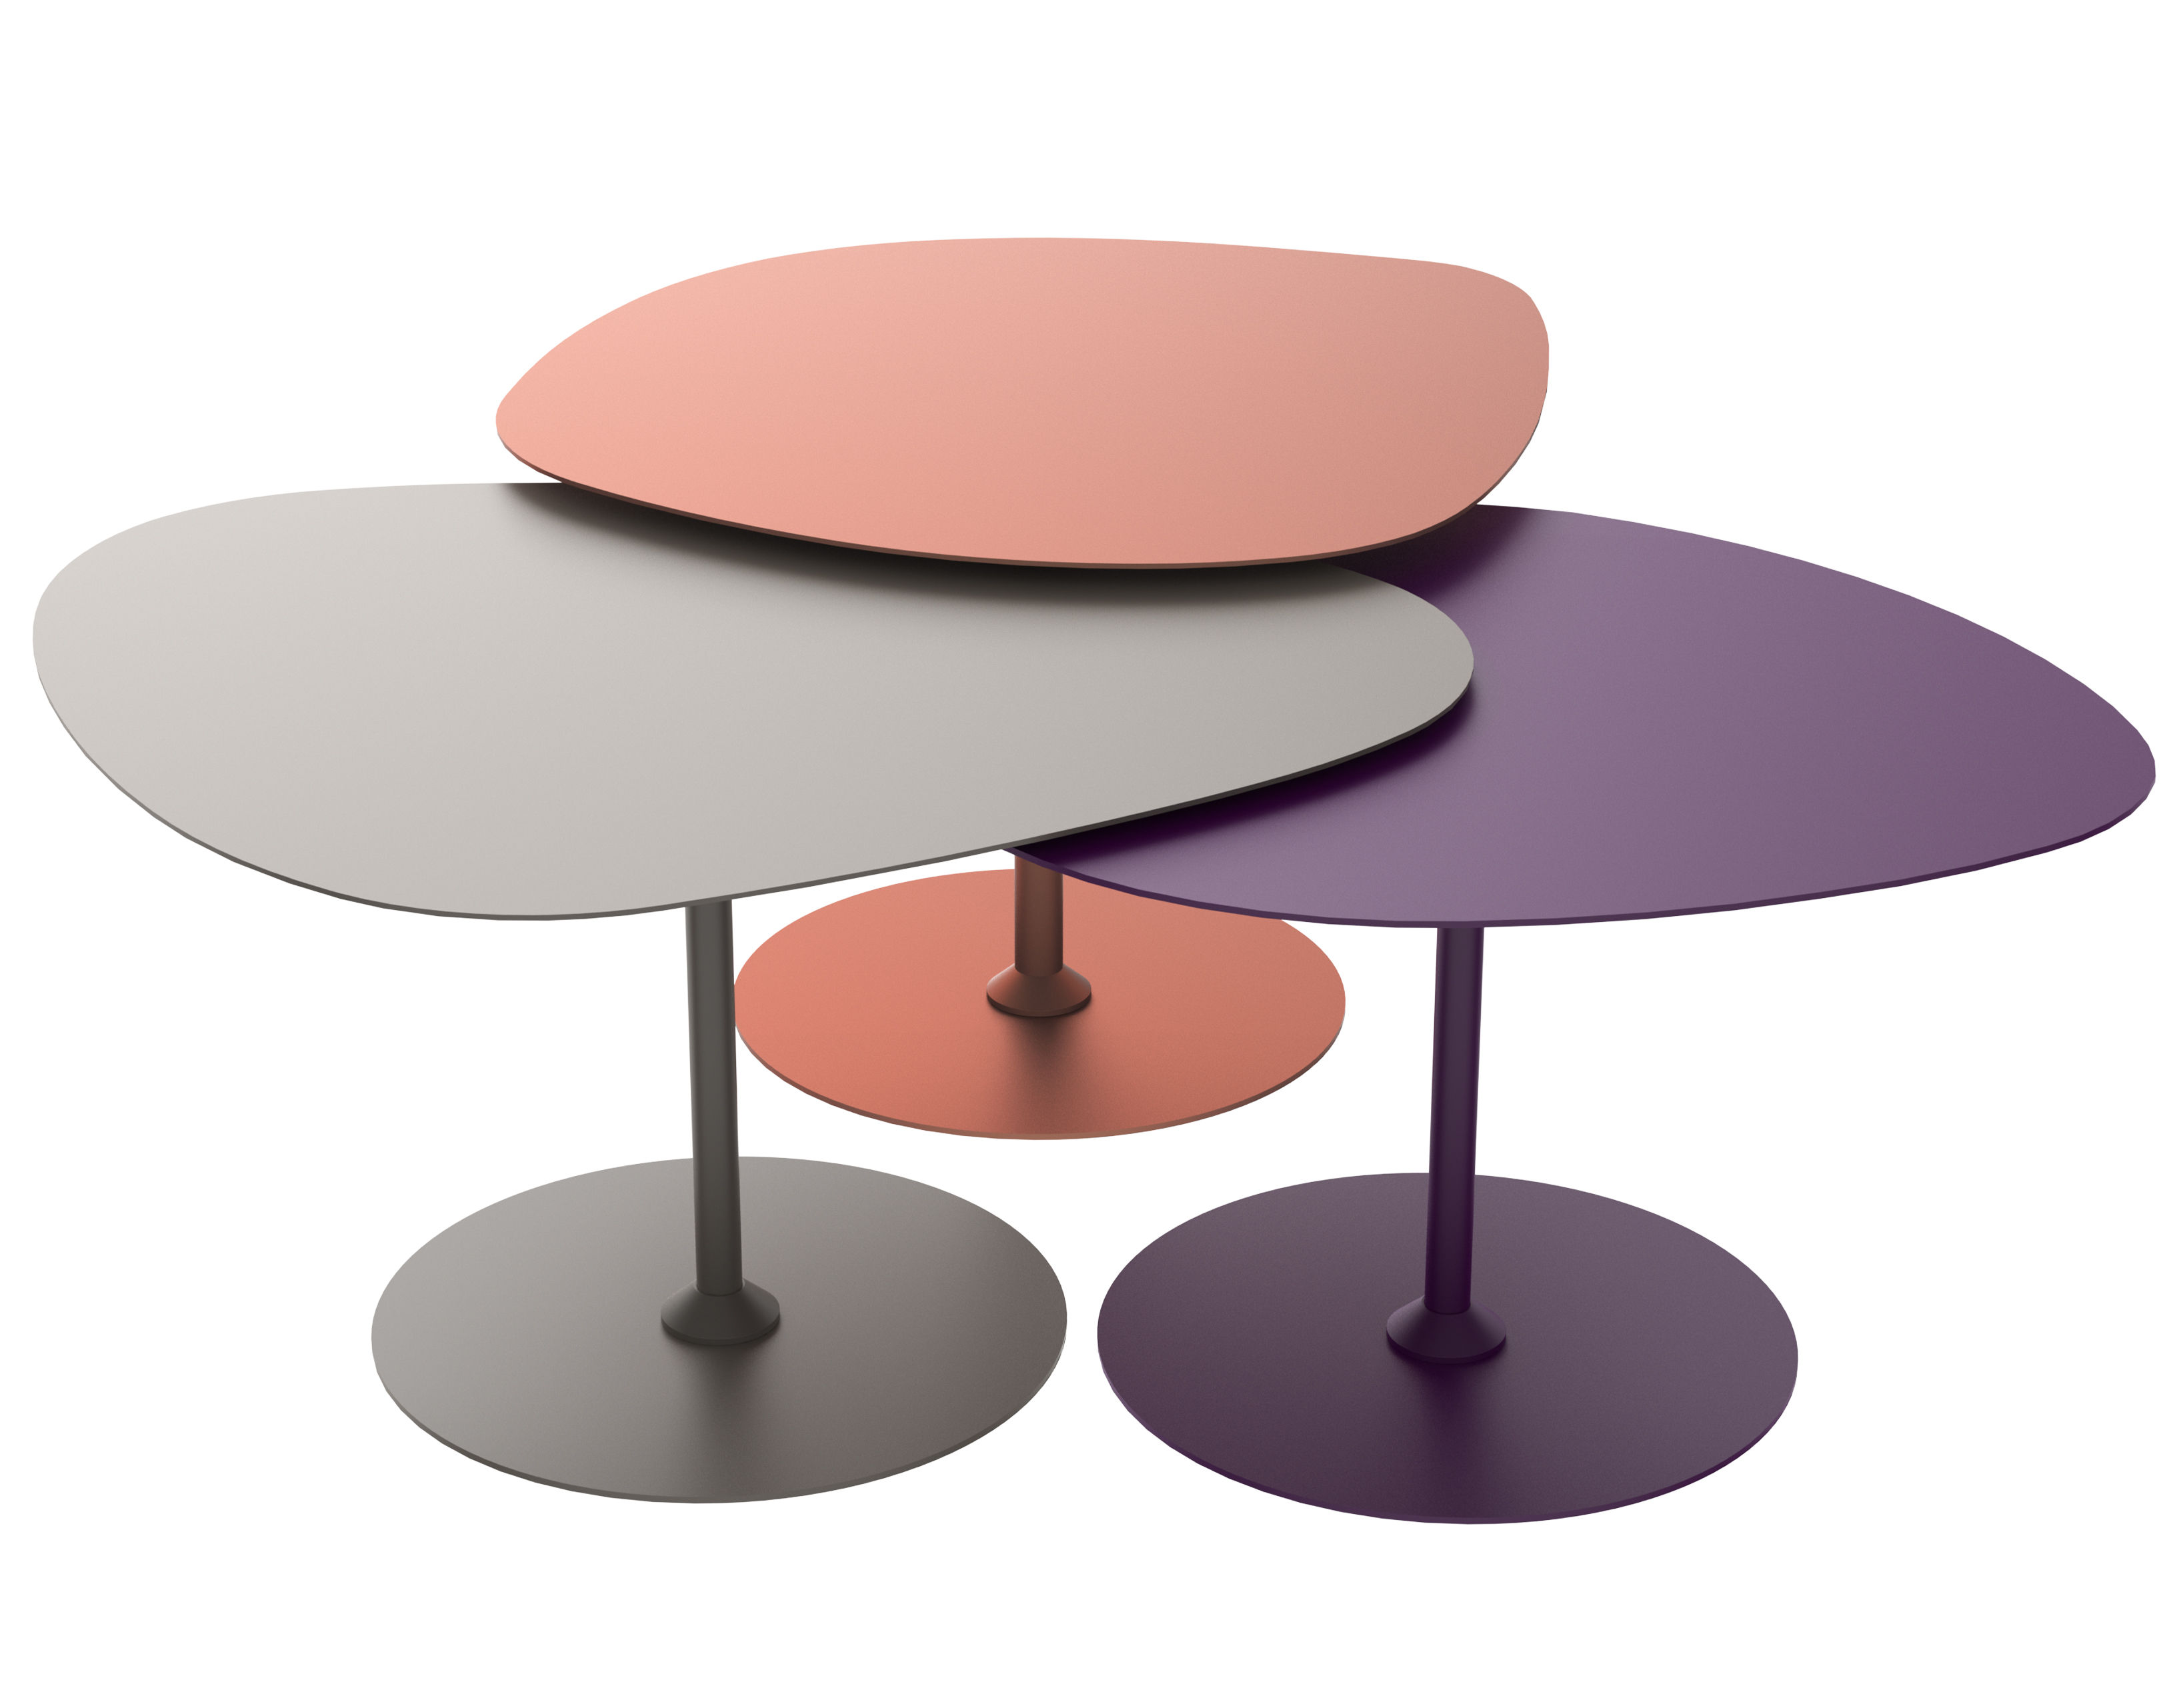 Furniture - Coffee Tables - 3 Galets Outdoor Nested tables - Set of 3 by Matière Grise - Copper, Taupe, Aubergine - Painted aluminium